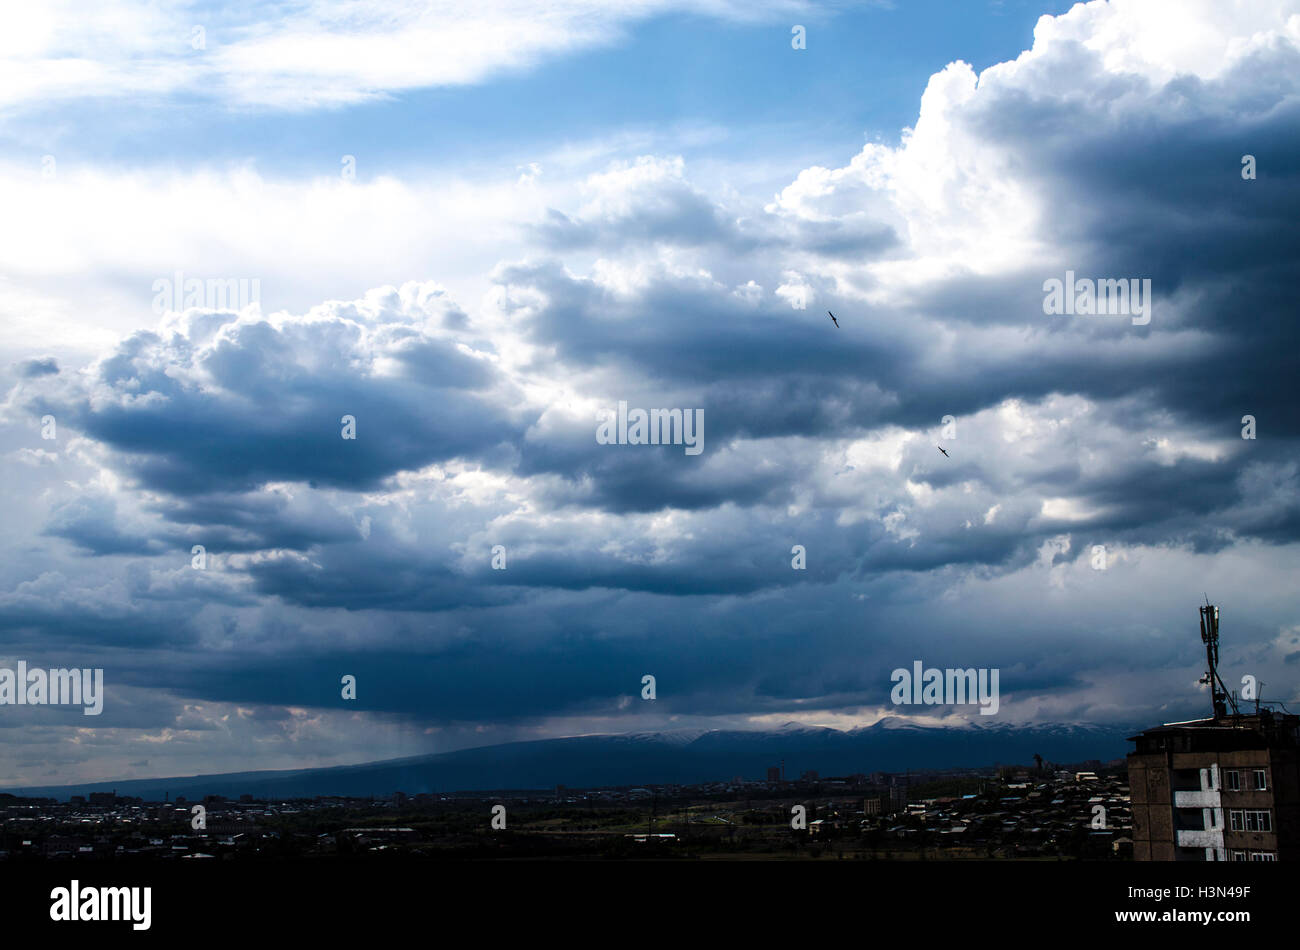 Stormy clouds before a rain around the city - Stock Image